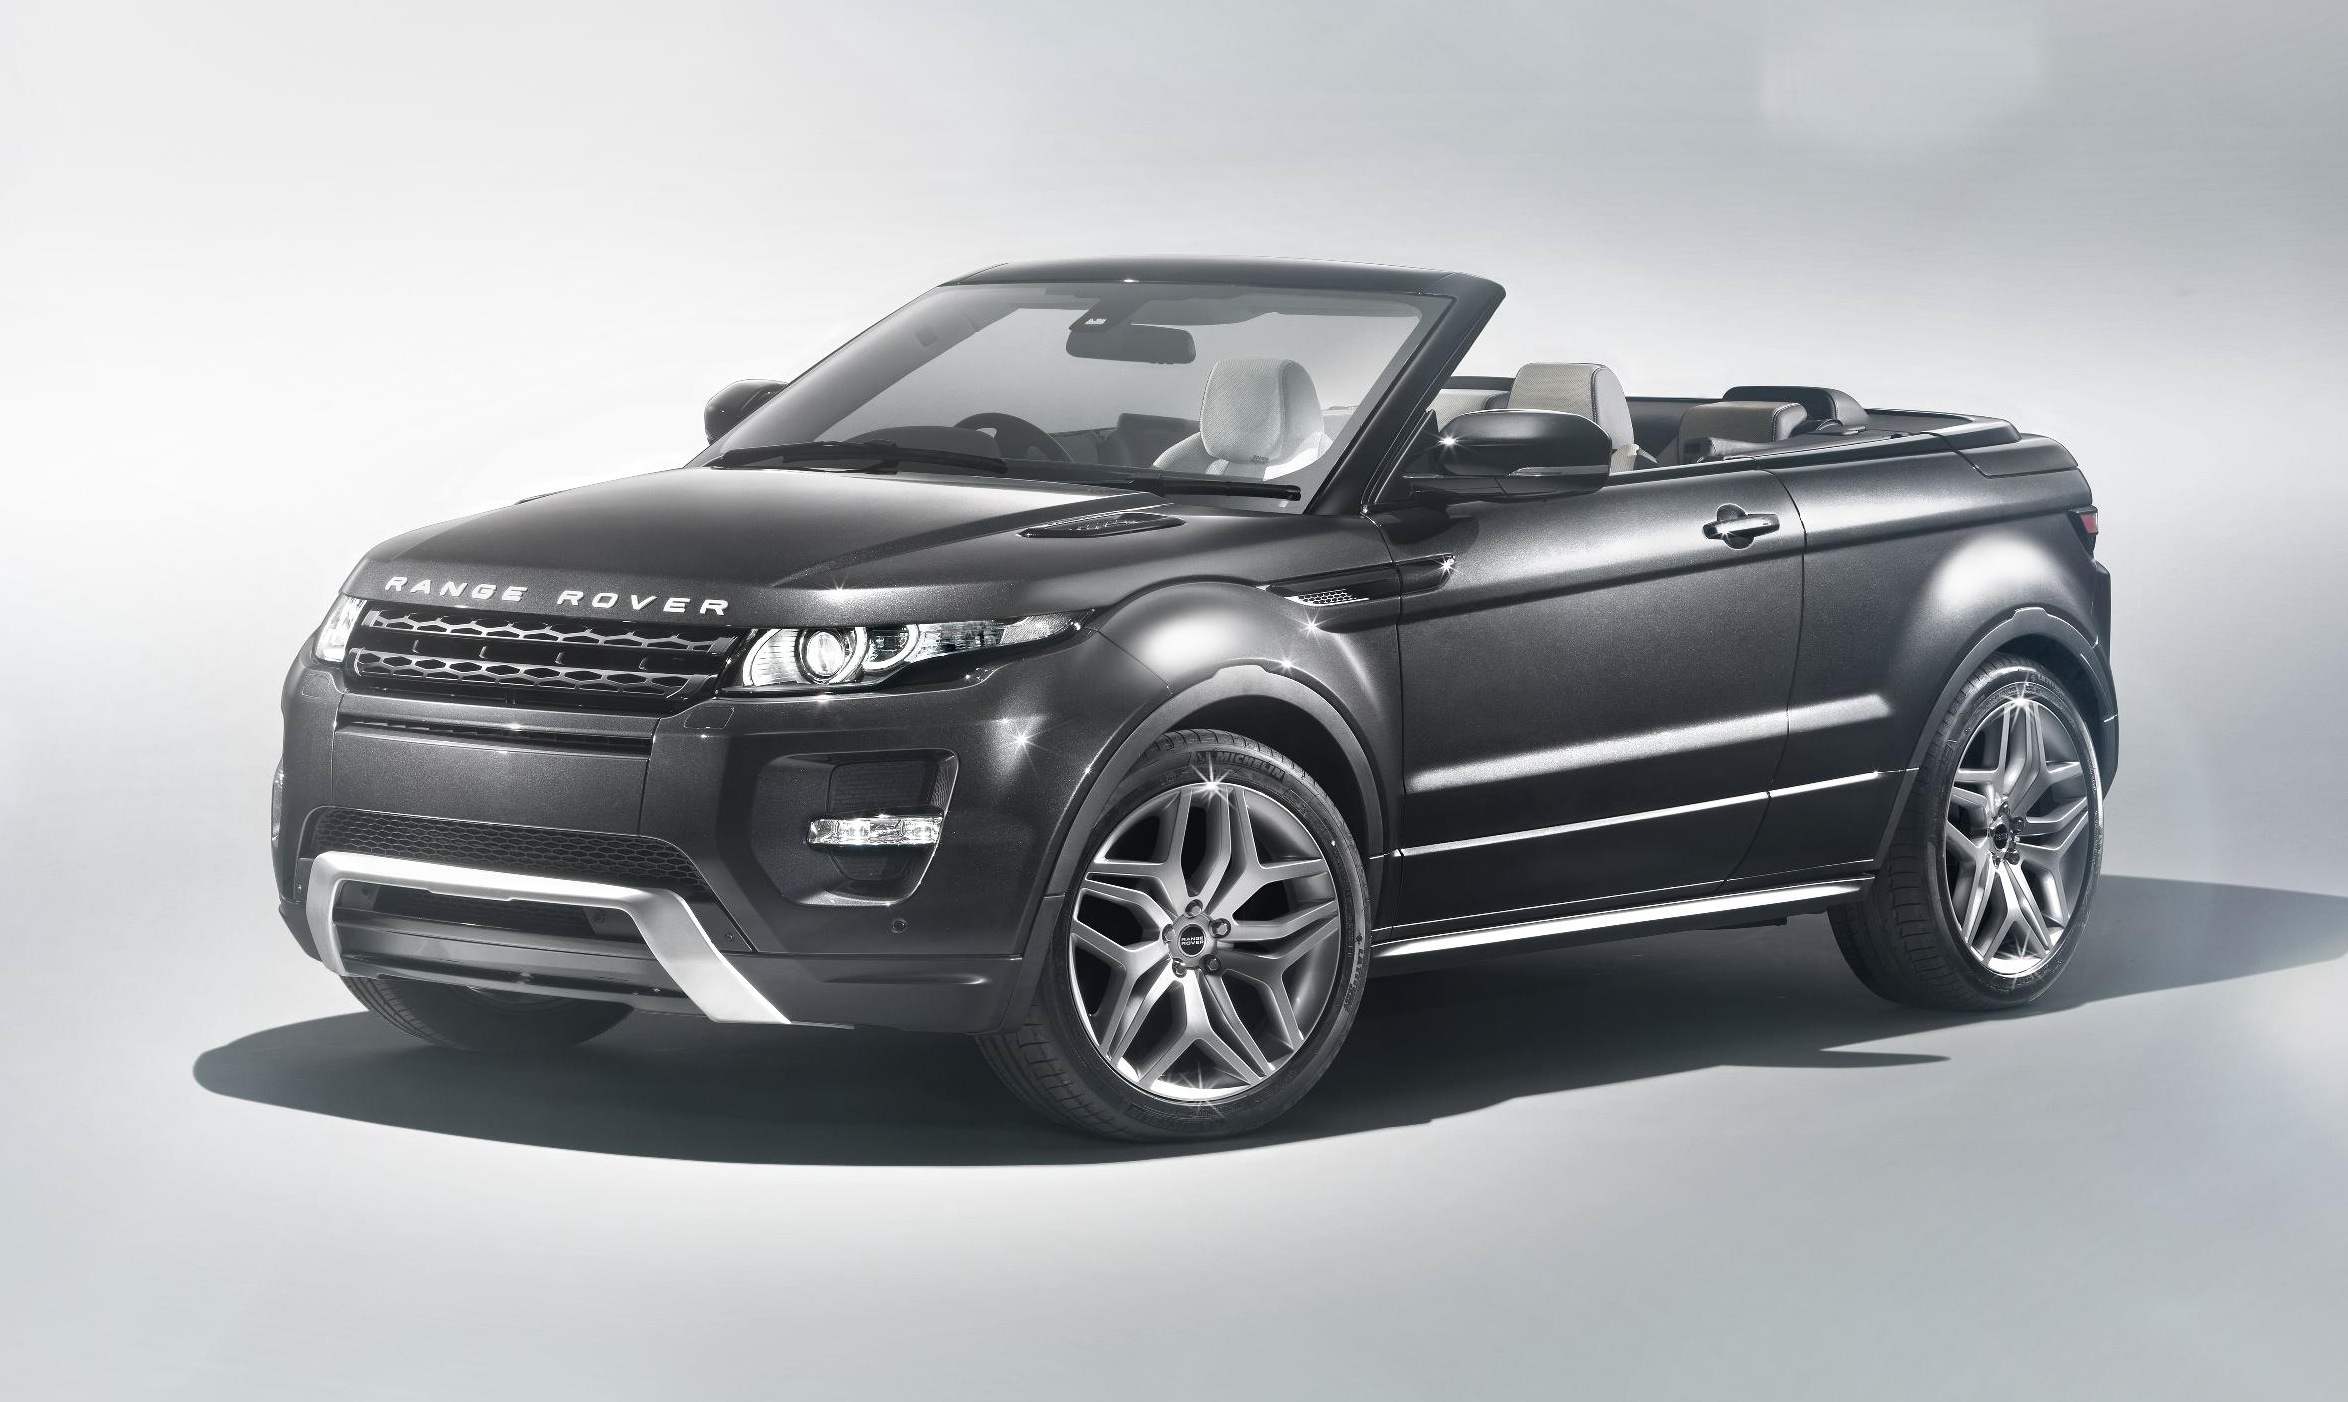 Range Rover Evoque Convertible is to be launched at the Geneva Show in March to gain reaction to the concept